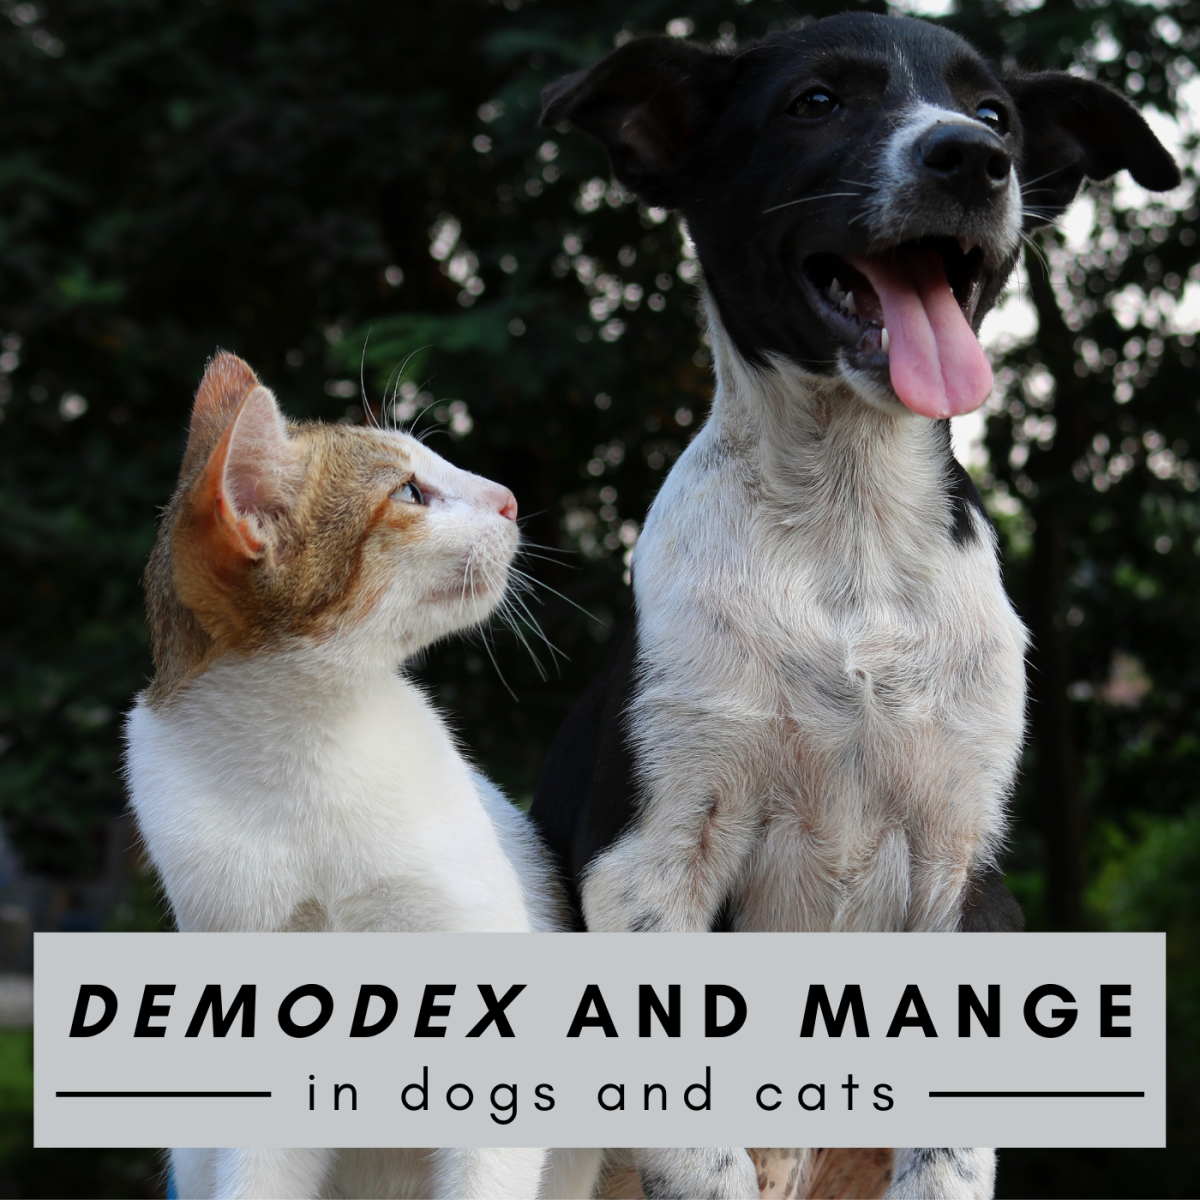 Some mite species from the genus Demodex can cause symptoms of mange in dogs and cats.